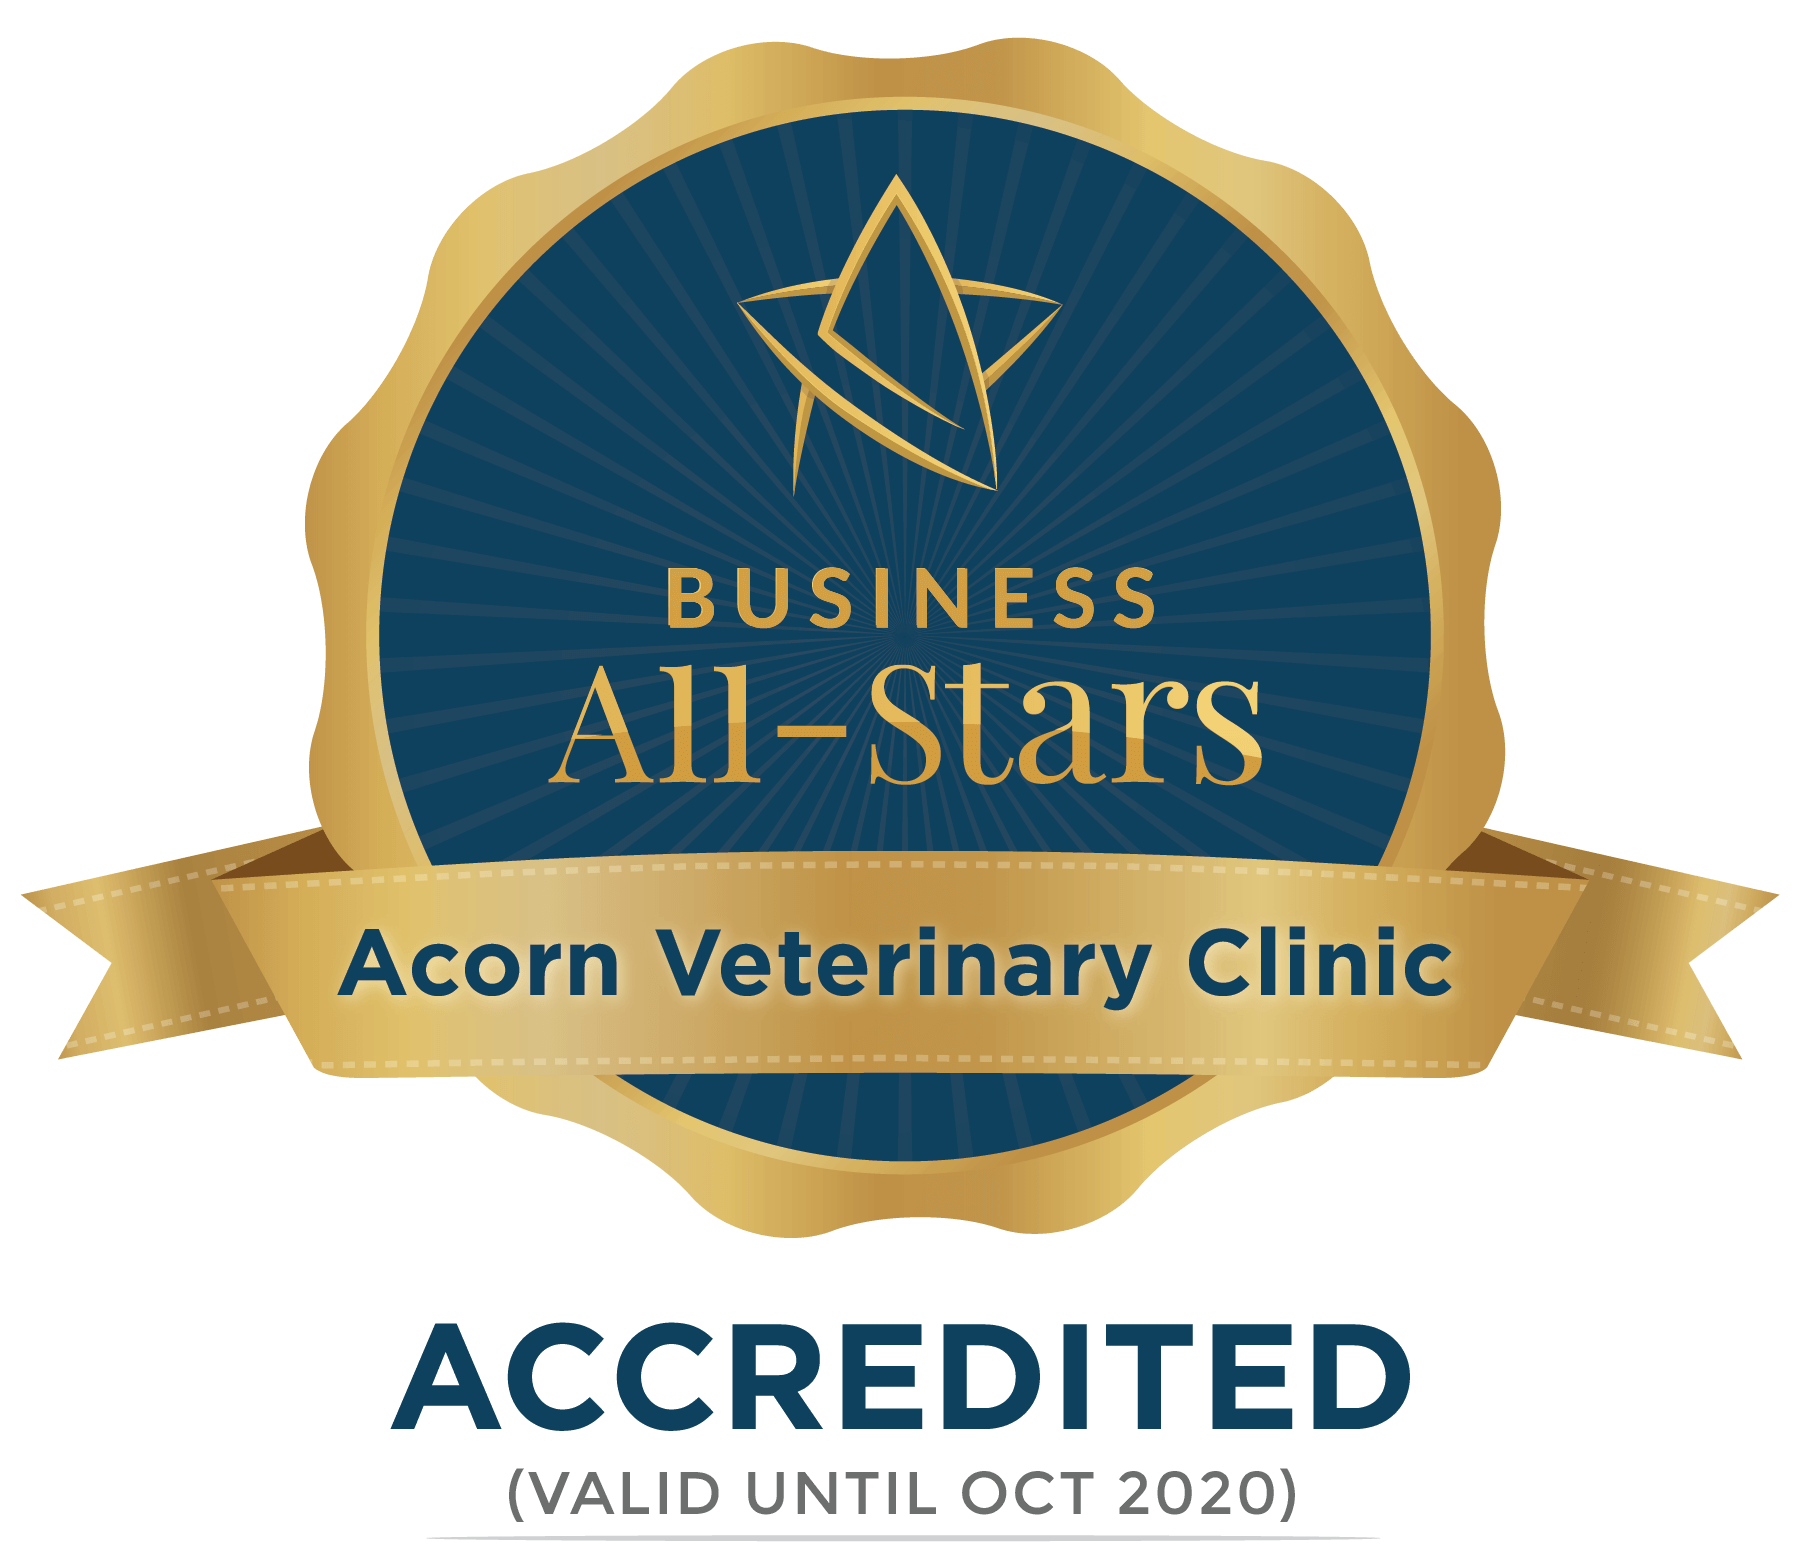 Acorn Veterinary Clinic - Business All-Stars Accreditation